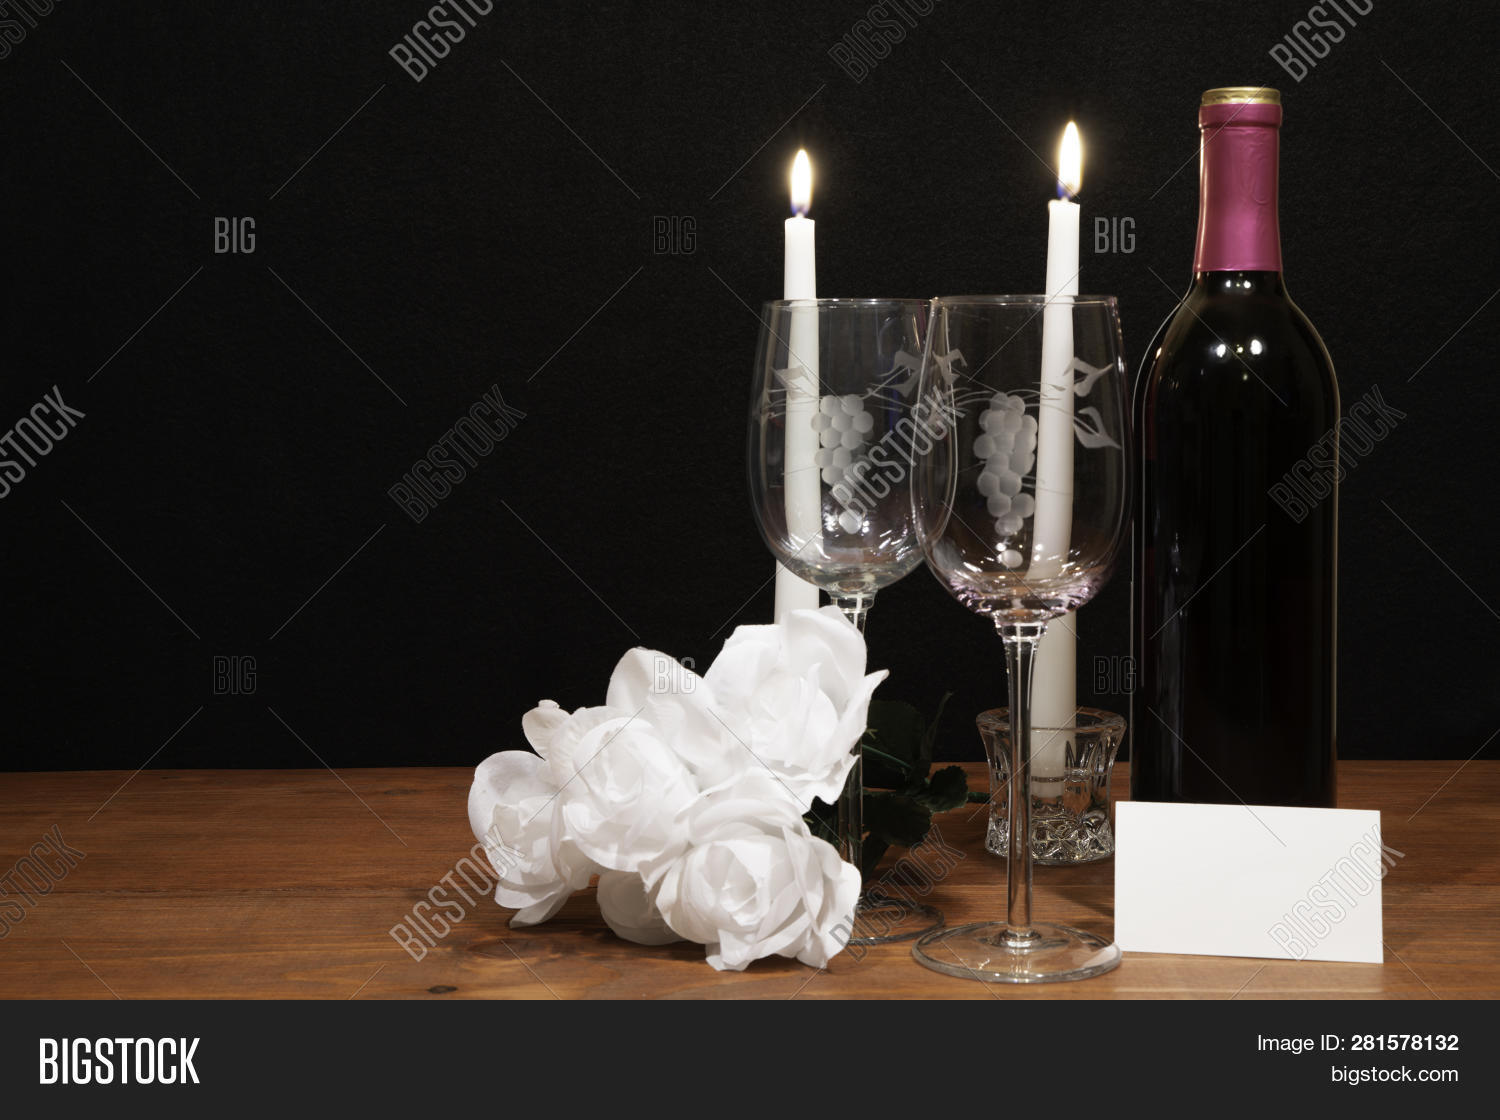 907e715c030a Beautiful etched wine glasses and bottle of red wine, white candles and  bouquet of white roses on wooden table with card on dark background.